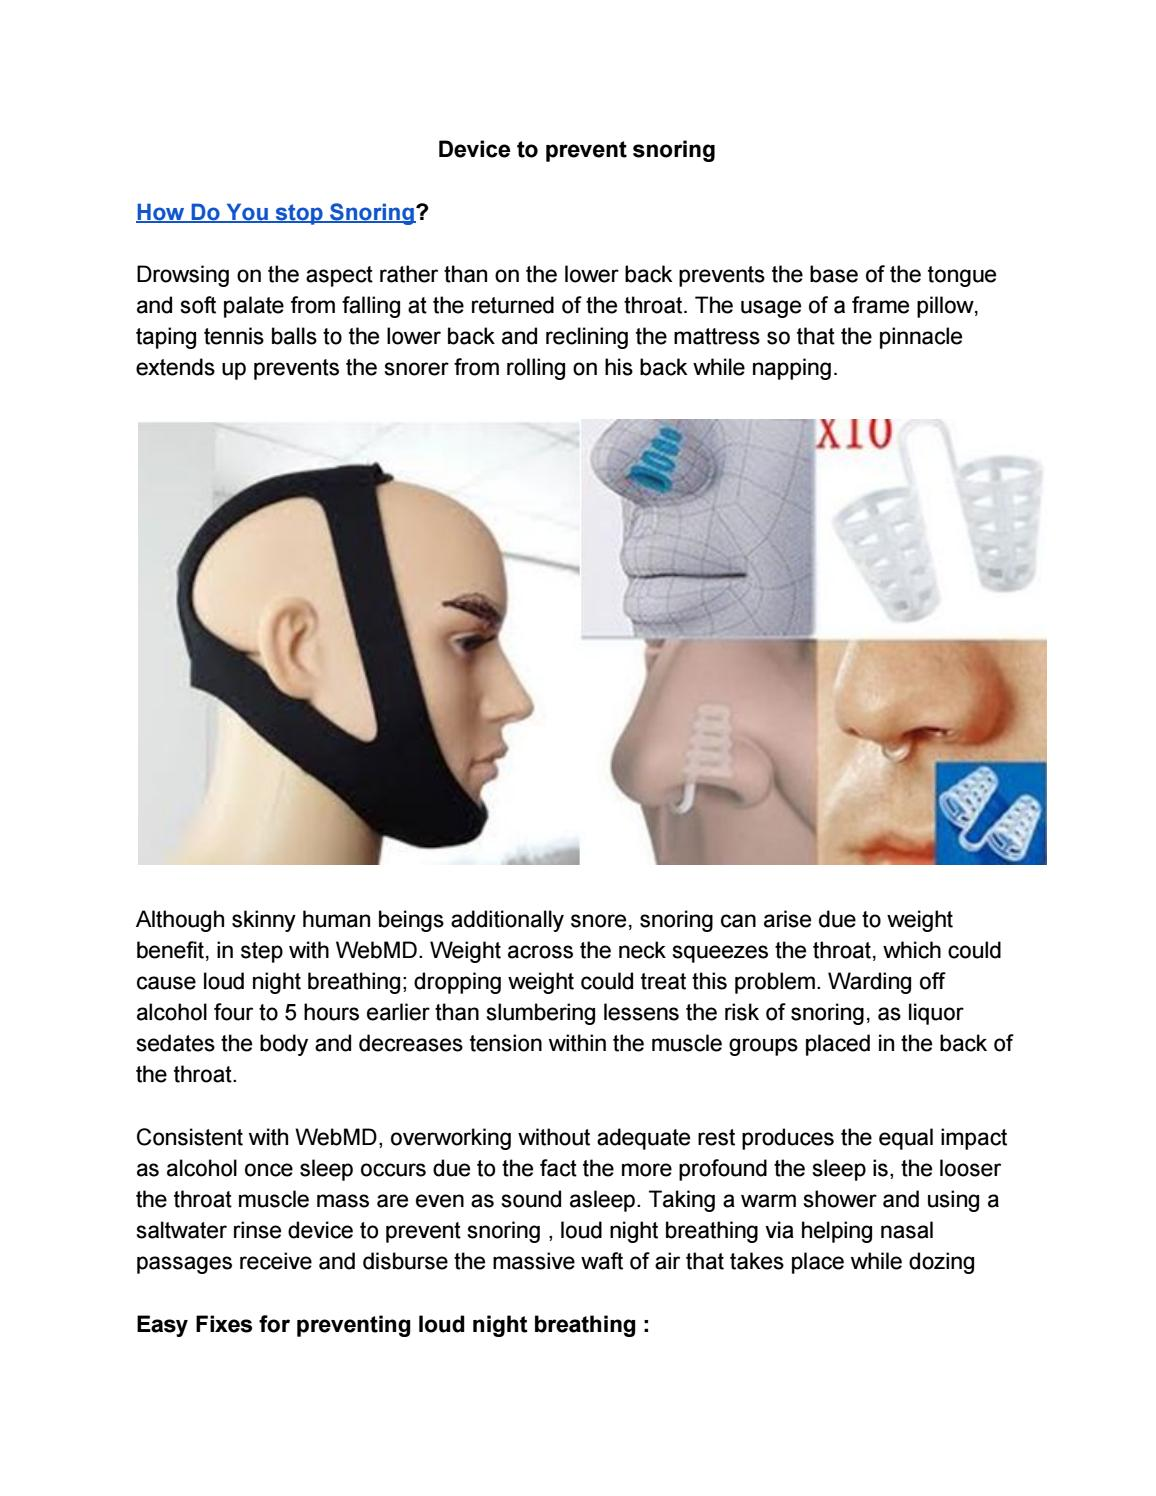 Device To Prevent Snoring By Akona4404 Issuu